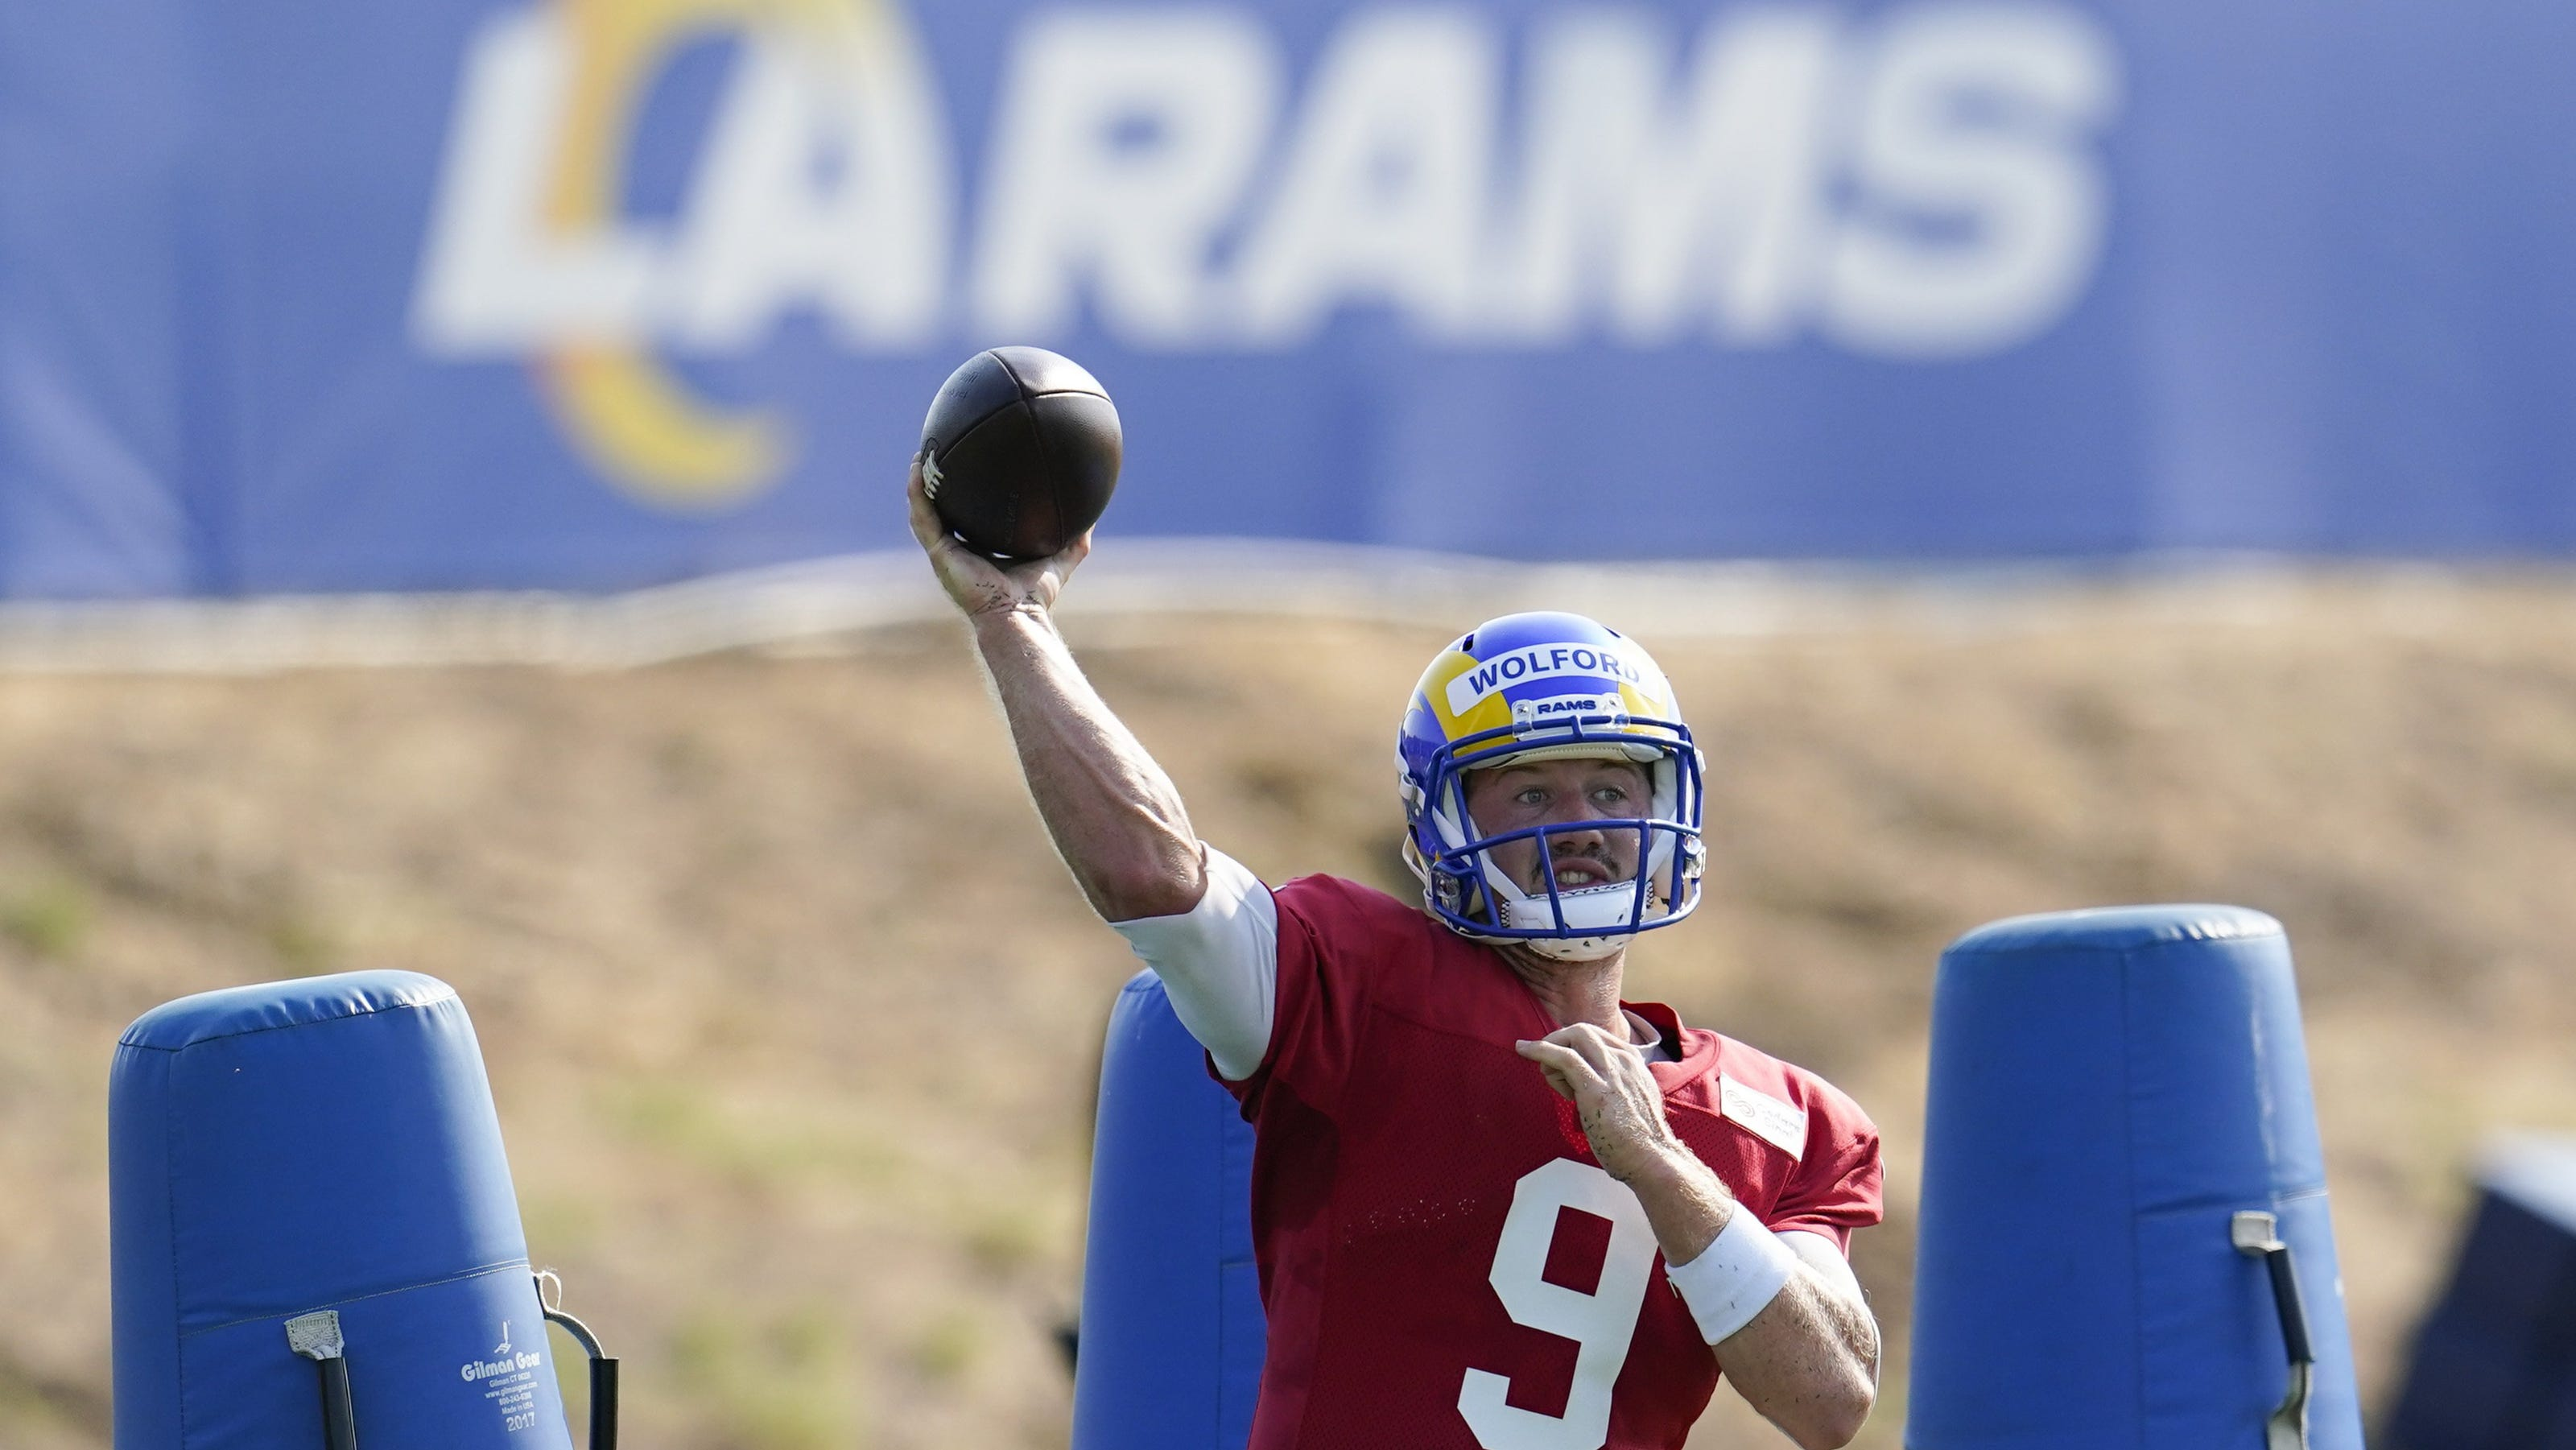 Quarterback Wolford Wants To Show Rams He Belongs On The Nfl Stage